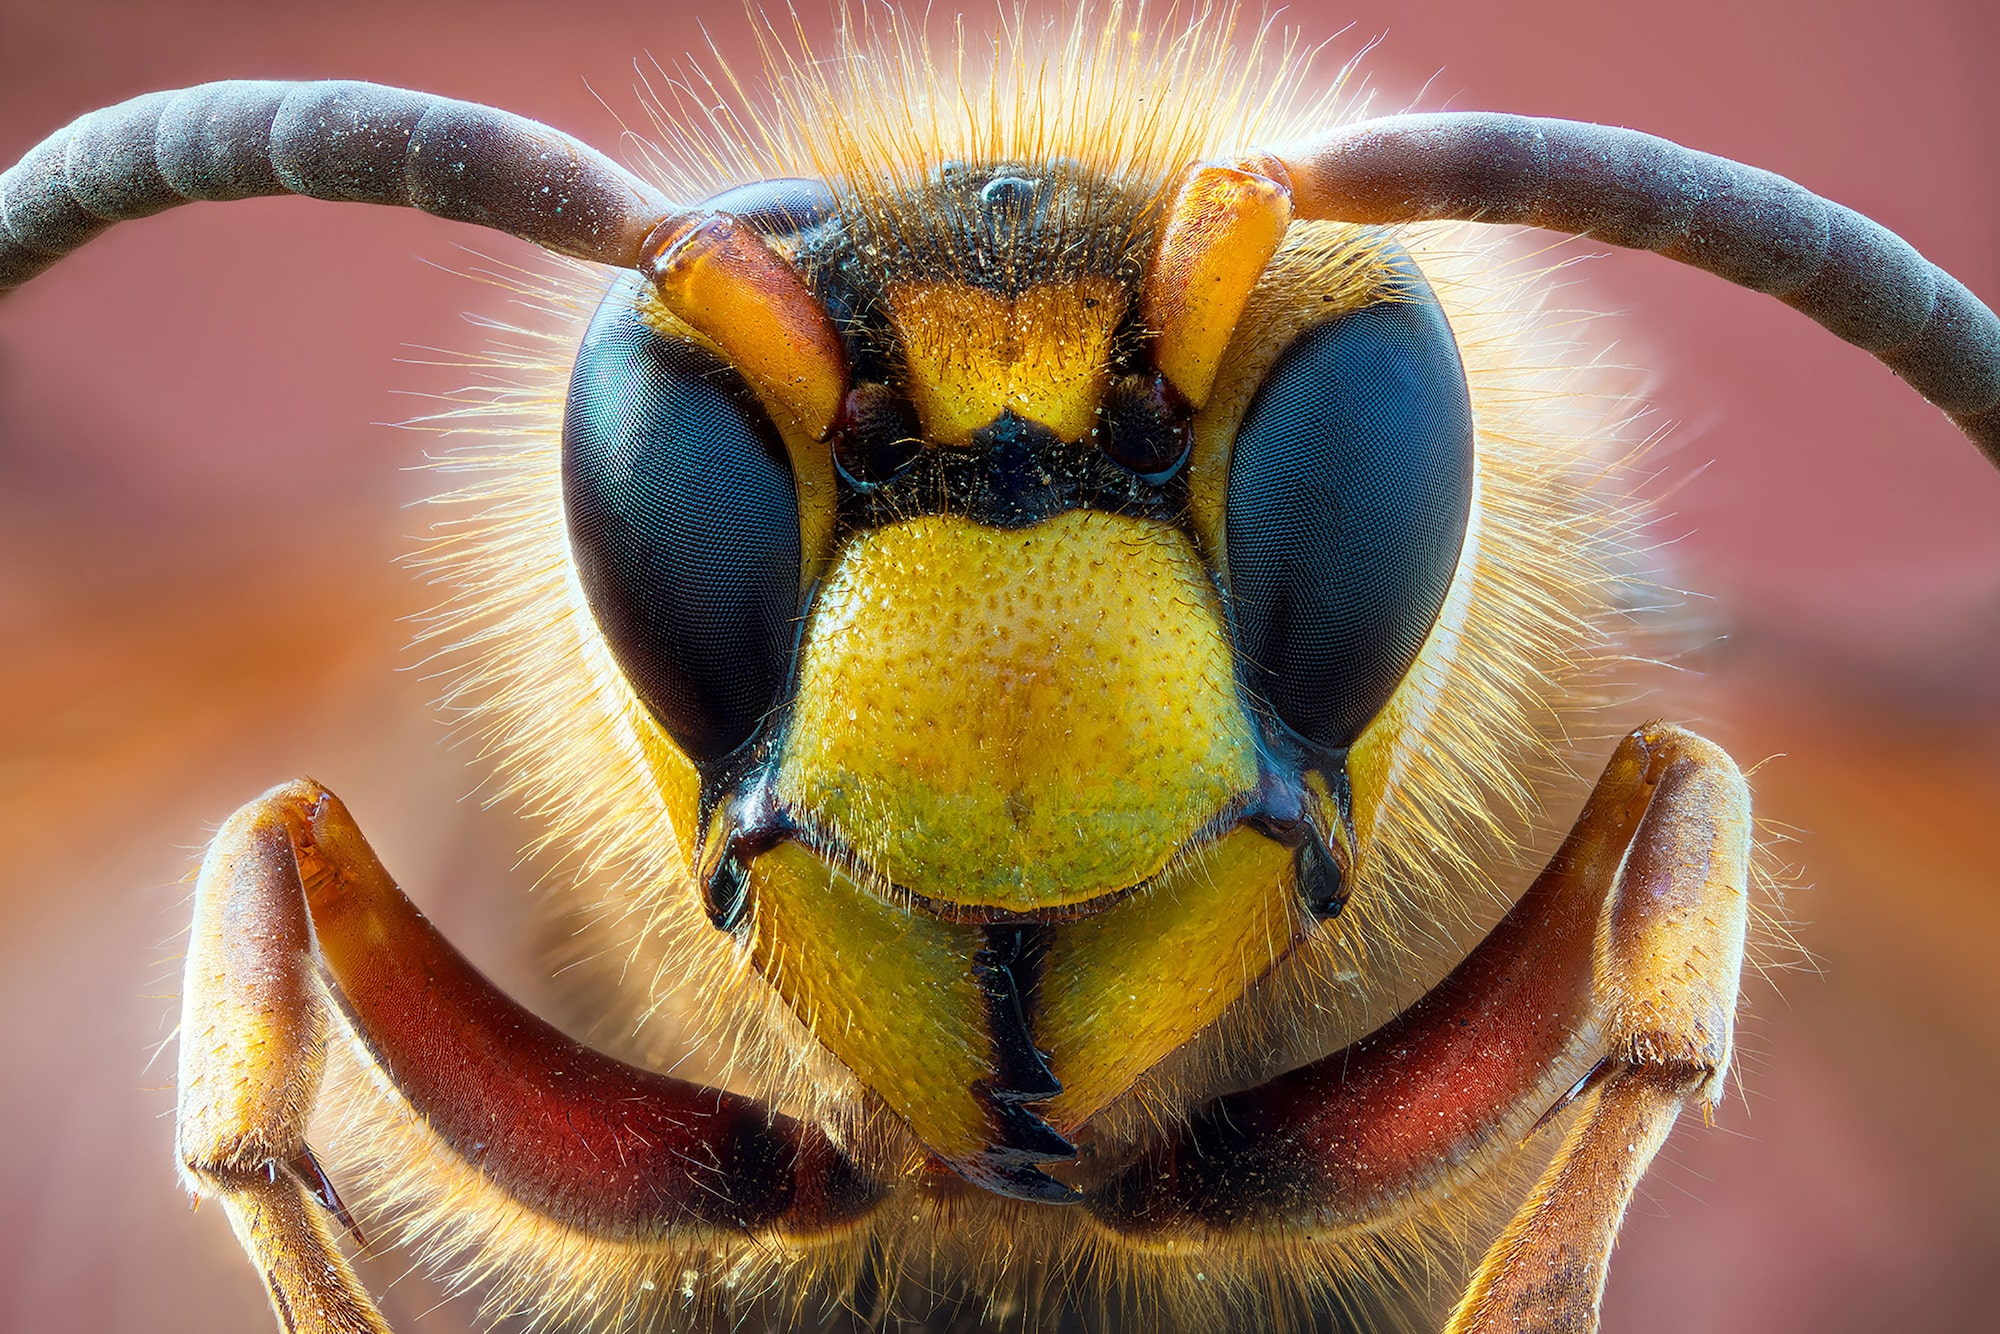 petar sabol sony alpha 7RIII extreme close up of a hornets face